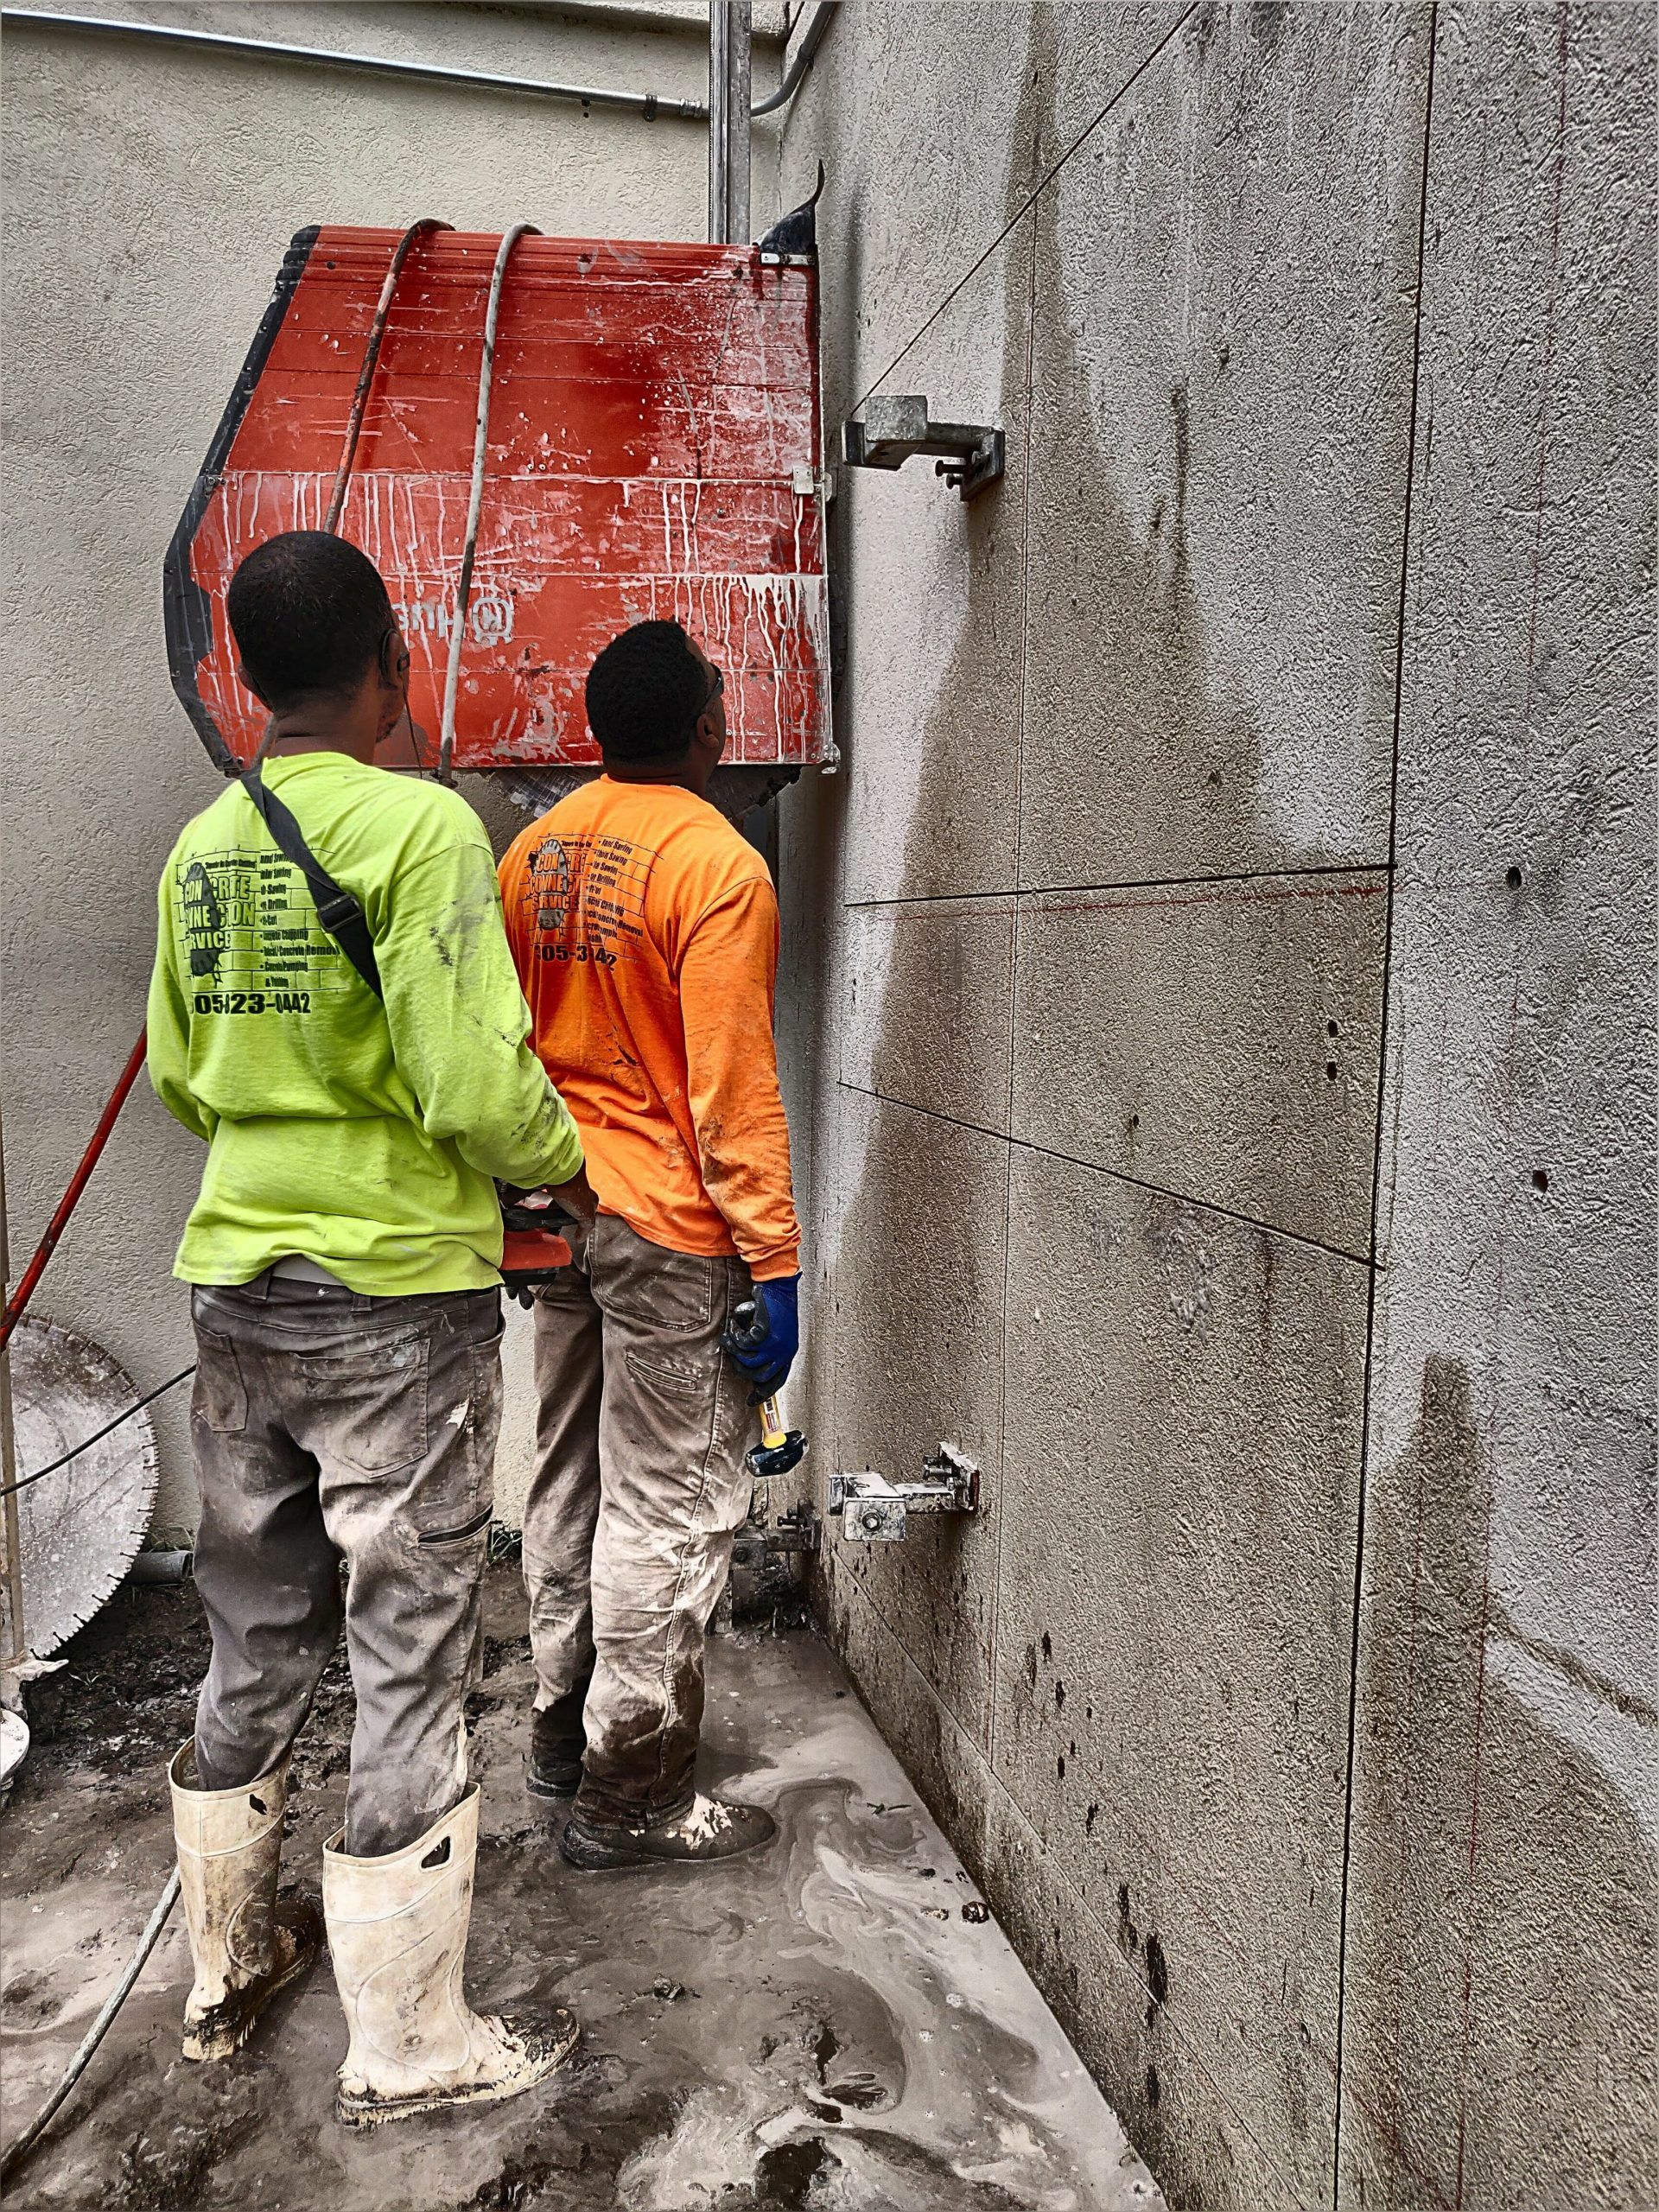 Track Sawing 13 Inch Thick Wall In 2020 Concrete Brickell Saw